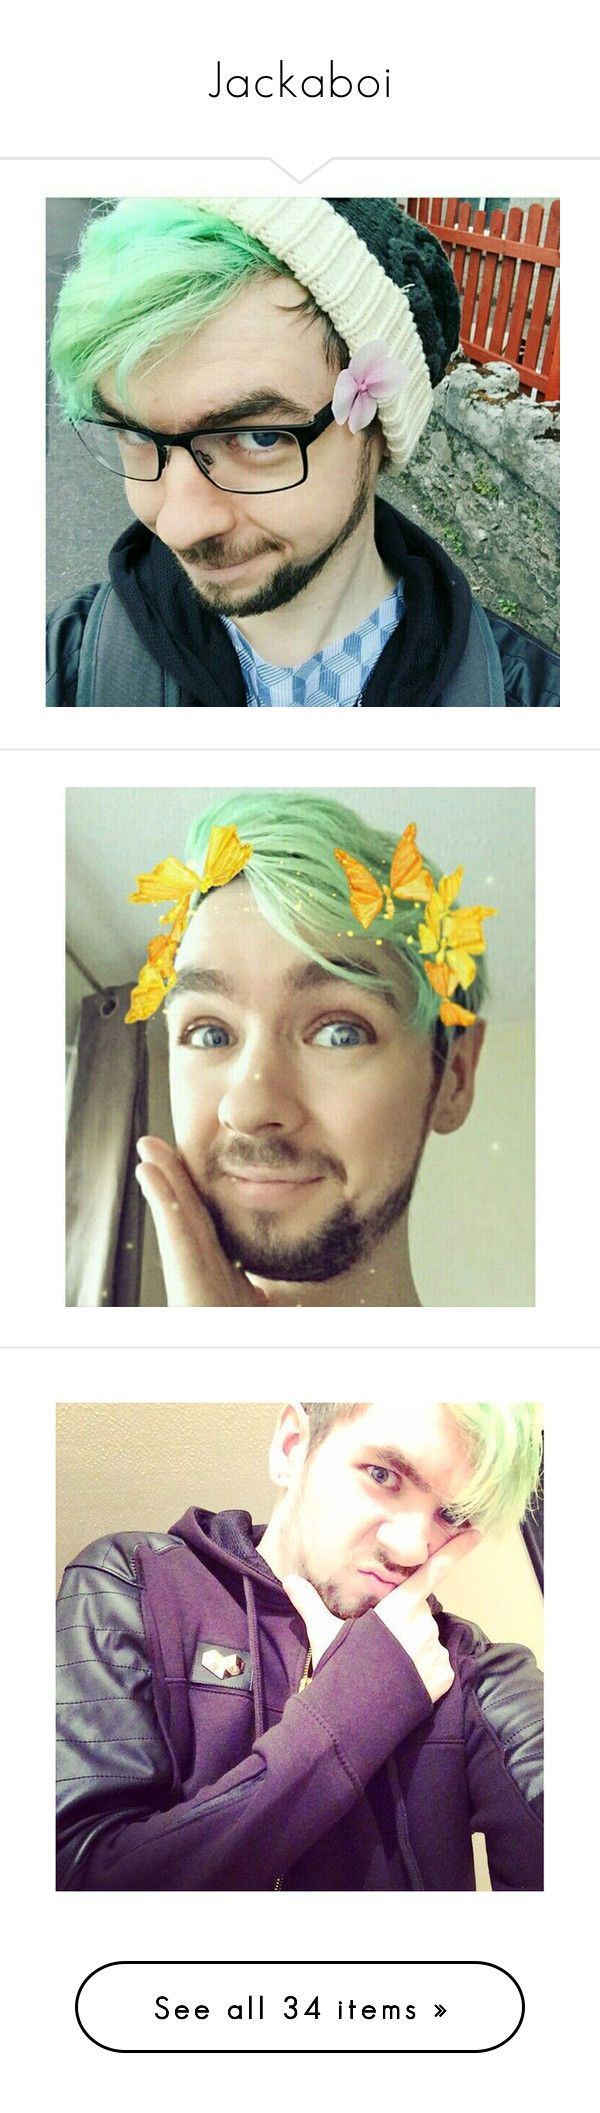 """""""Jackaboi"""" by sparklecookie21 ❤ liked on Polyvore featuring septiplier, art, youtubers, jacksepticeye, H&M, Love Quotes Scarves, Vans, Fujifilm, Madewell and New Look"""